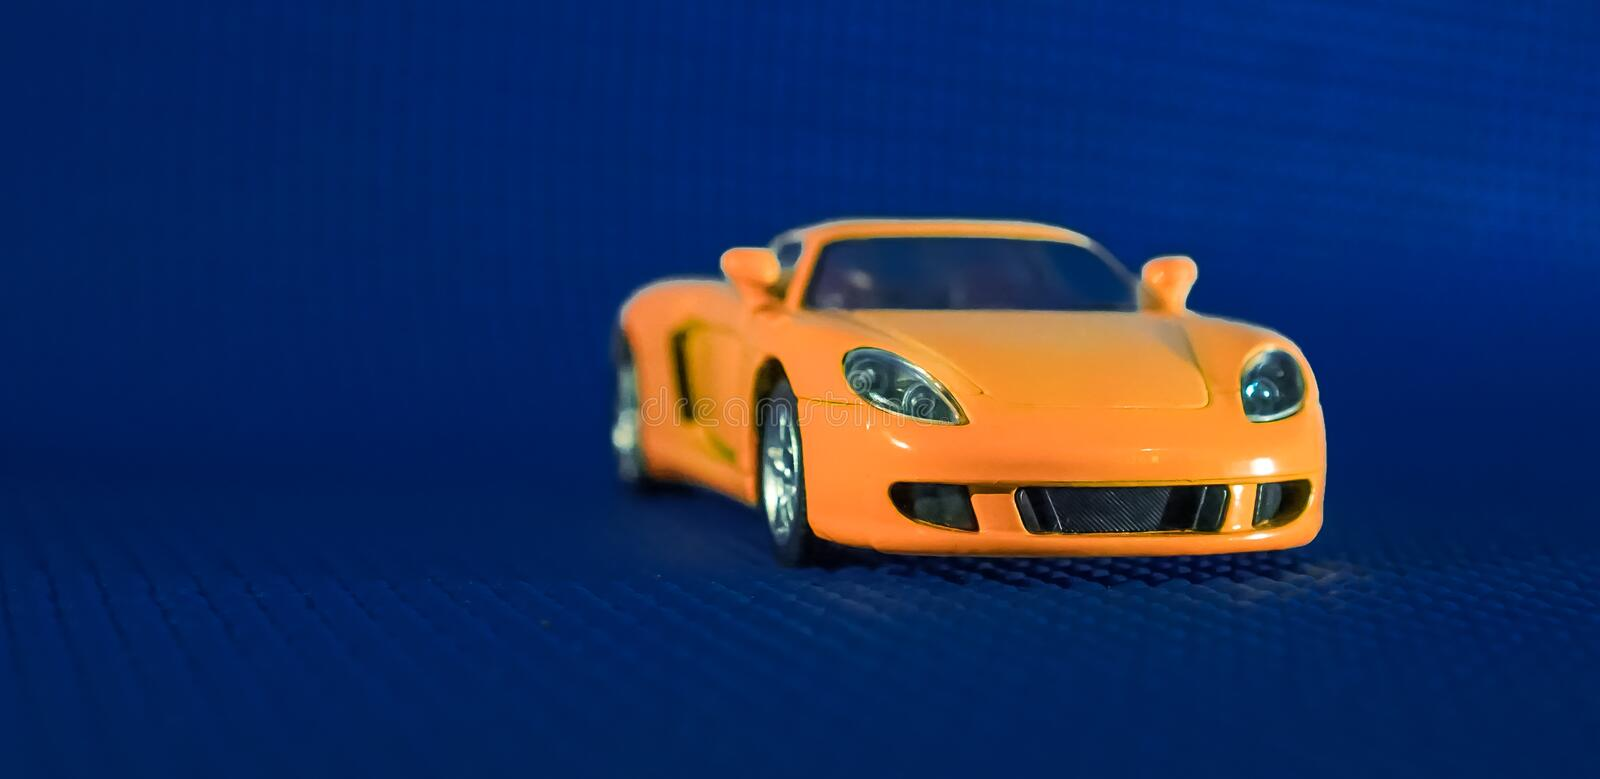 Porsche 911 Spyder sports car concept in orange color body. Porsche's petrol engine 911 roadster is an ultimate luxury cum race car which is one royalty free stock images